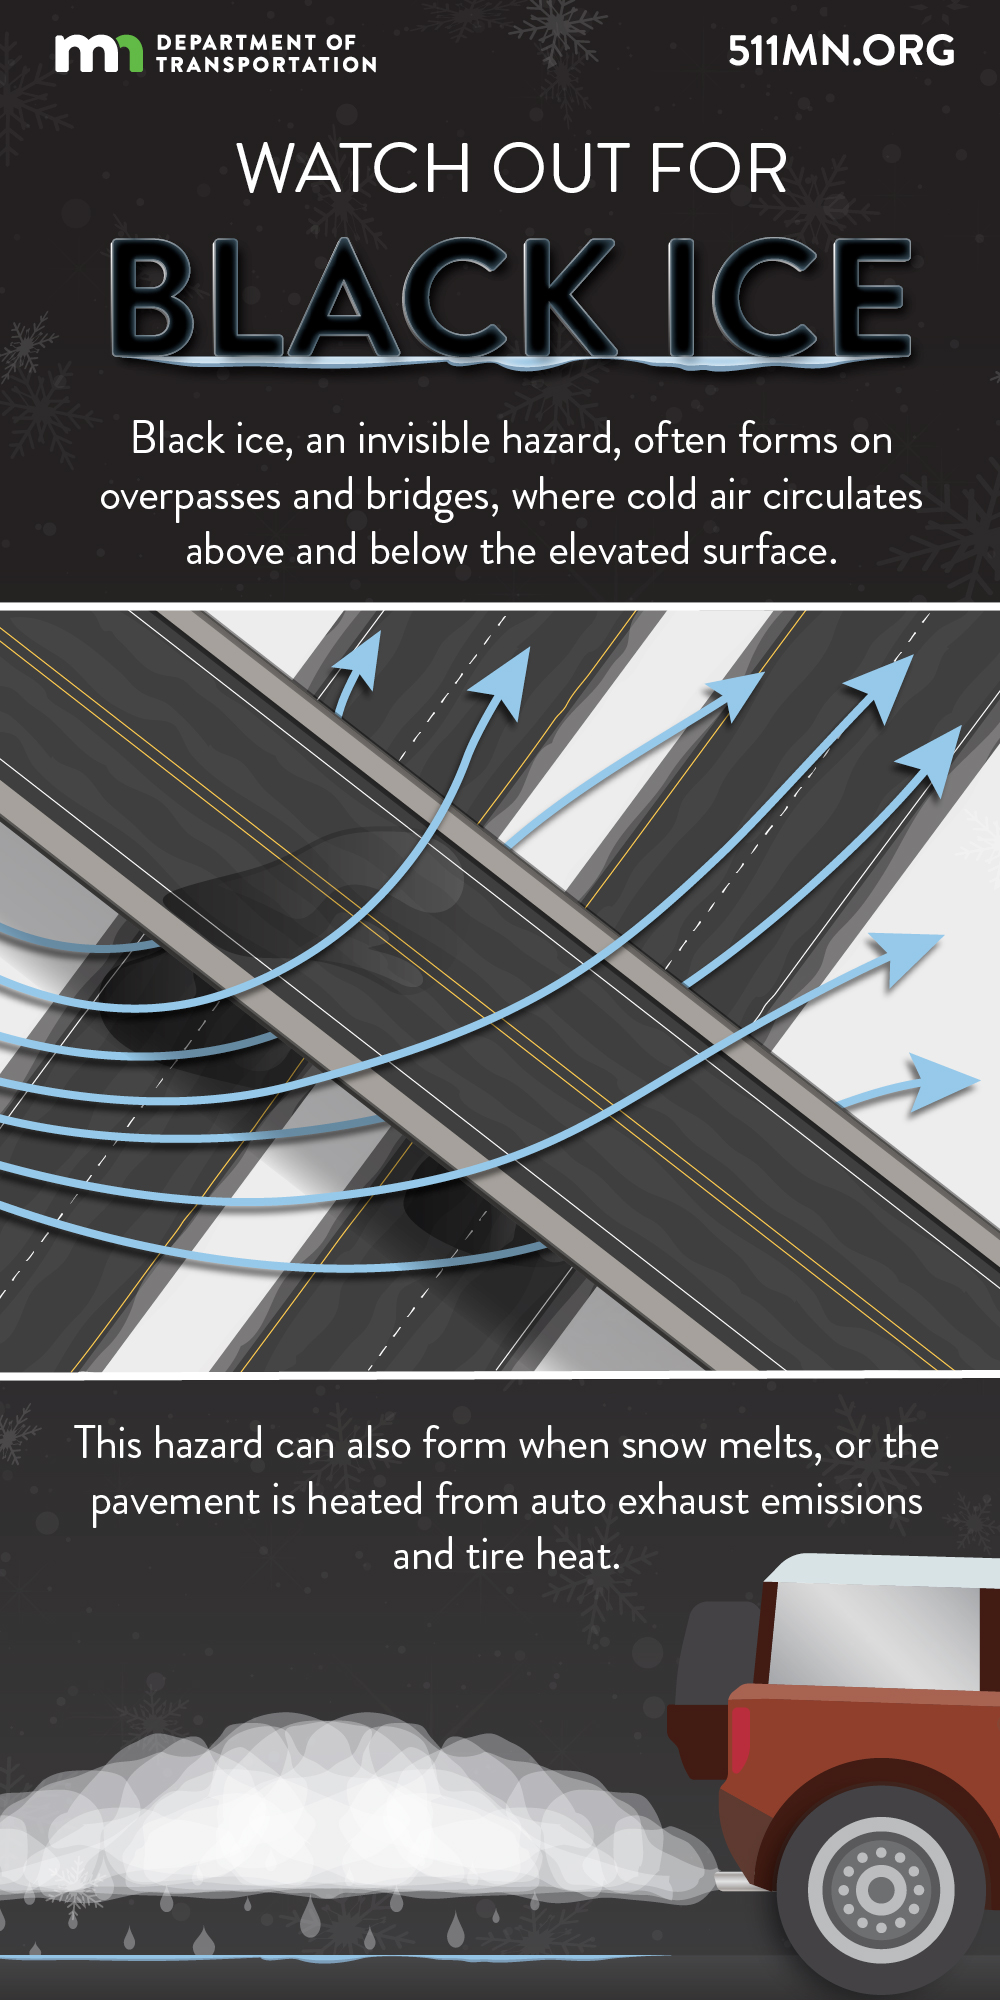 Black ice, an invisible hazard, often forms on overpasses and bridges, where cold air circulates above and below the elevated surface. This hazard can also form when snow melts, or the pavement is heated from auto exhaust emissions and tire heat.